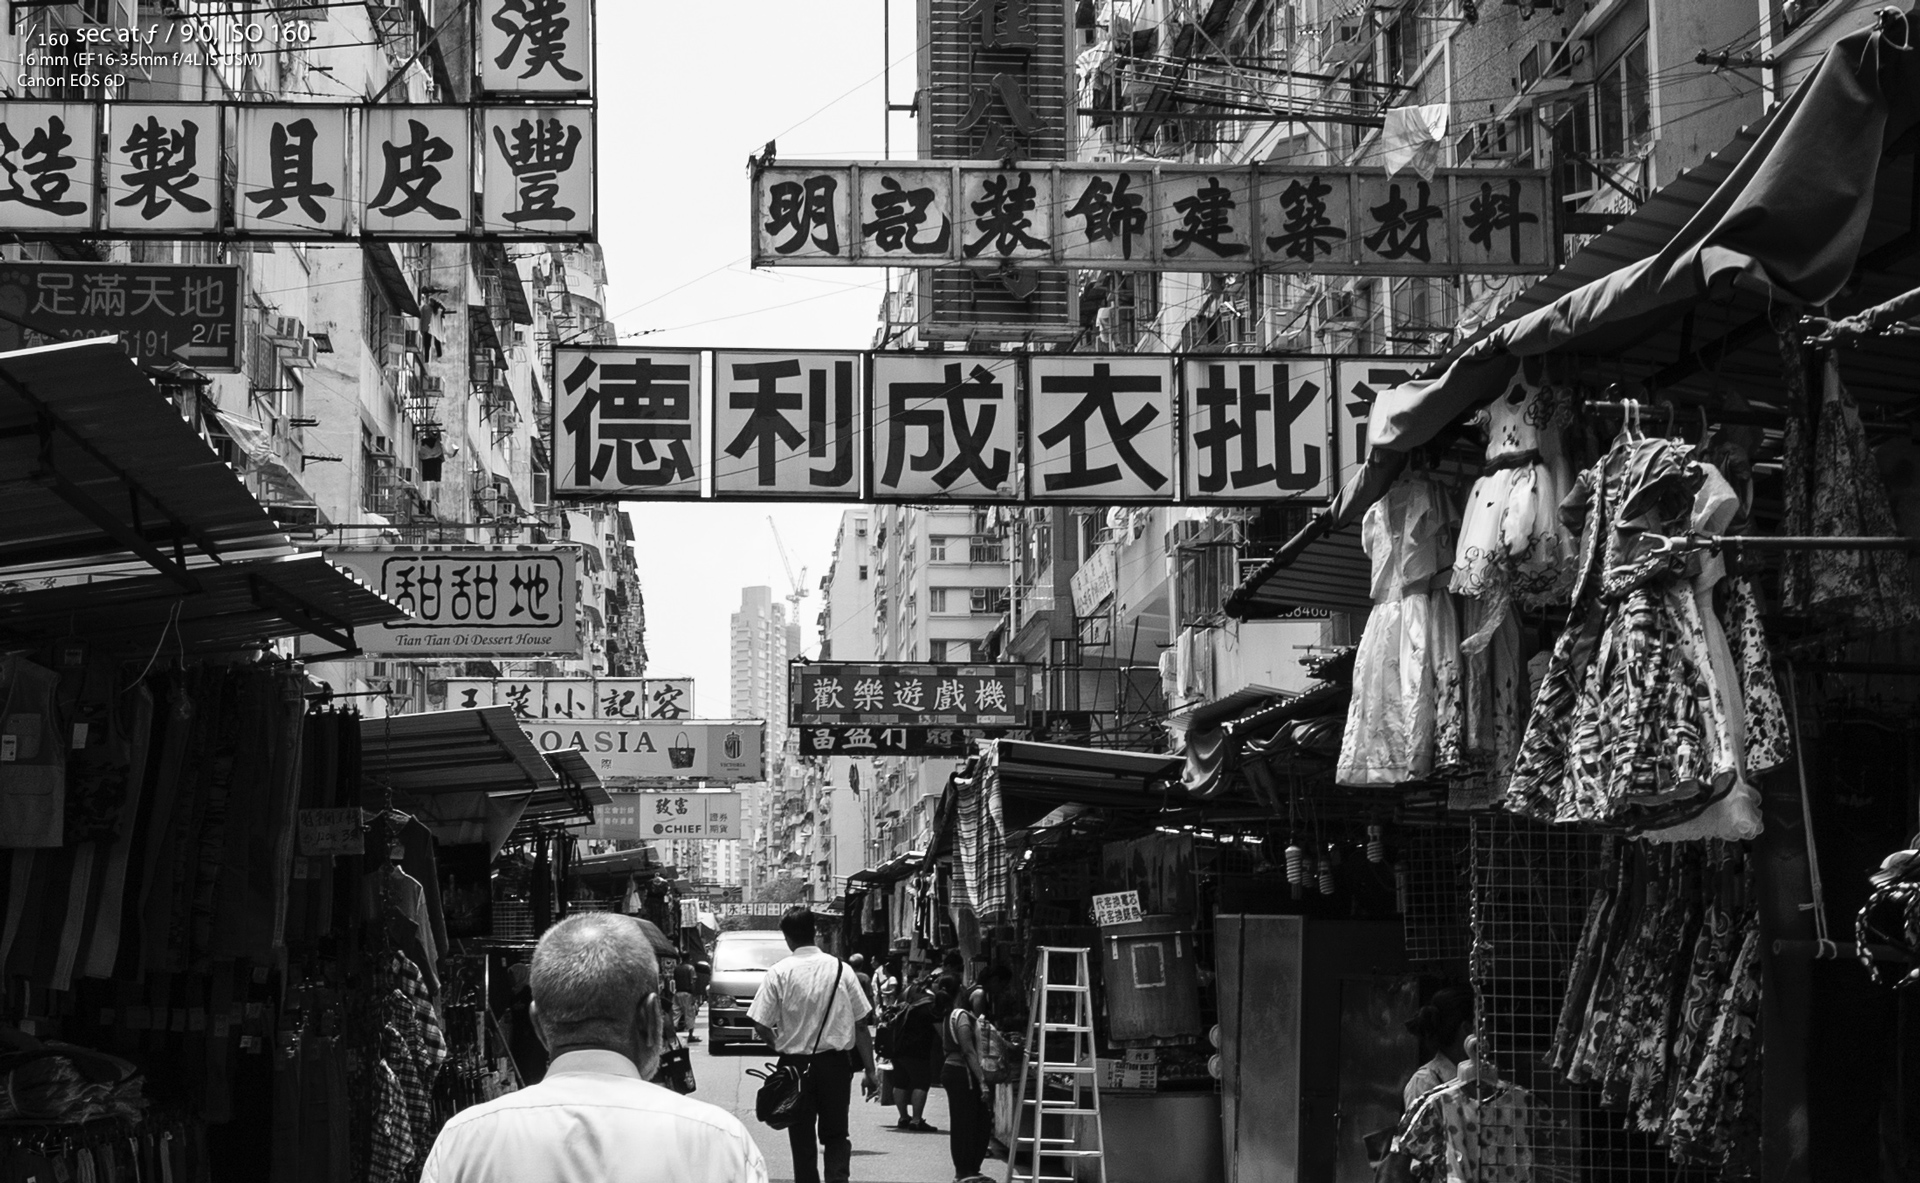 Canon_16-35mm_F4_IS_on_Canon_EOS_6D_Travel_Hong_Kong2